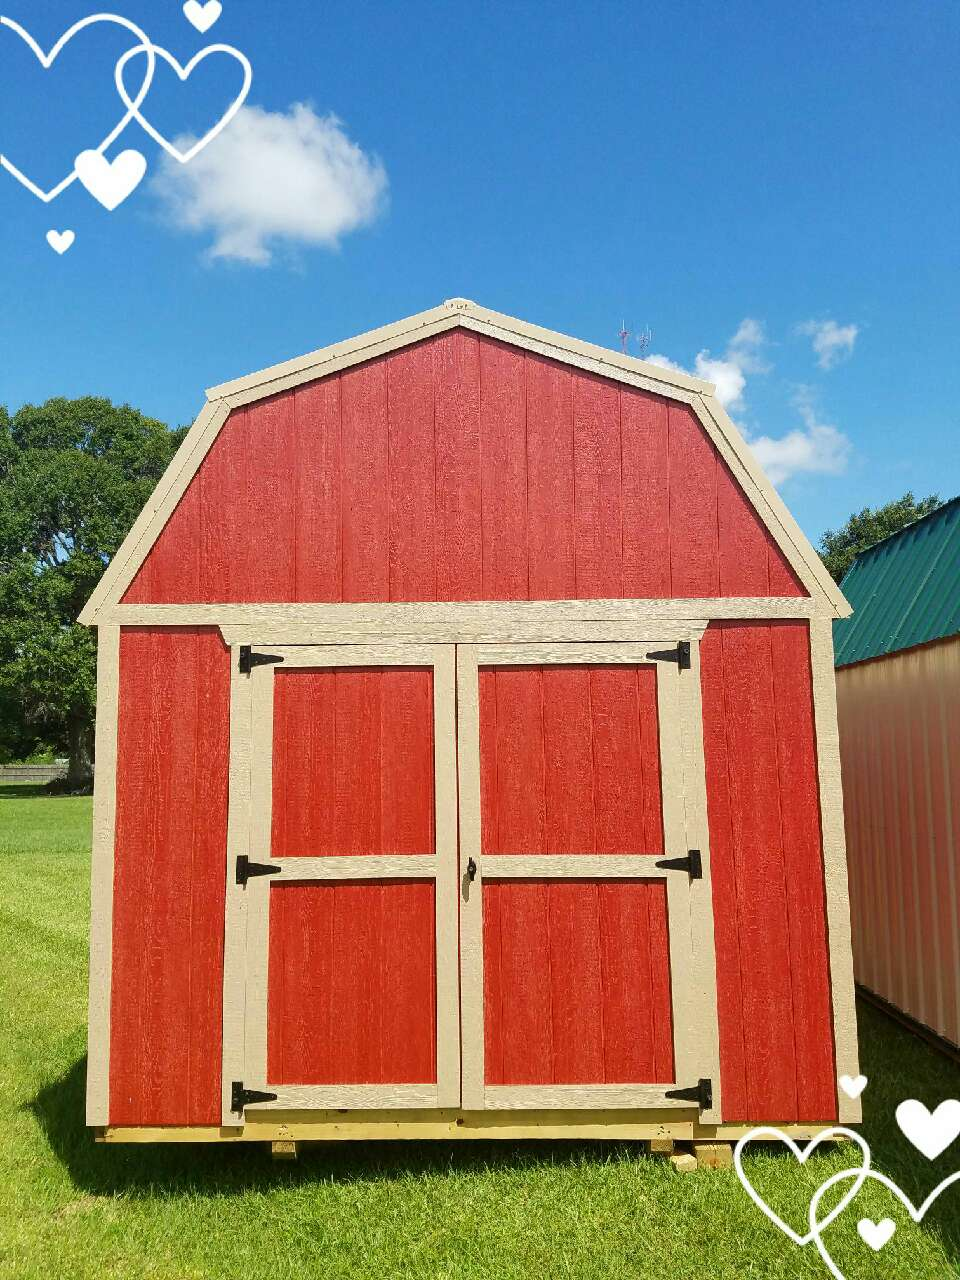 Letgo need dry space we are doing 20 in lafayette la for Down payment to build a house